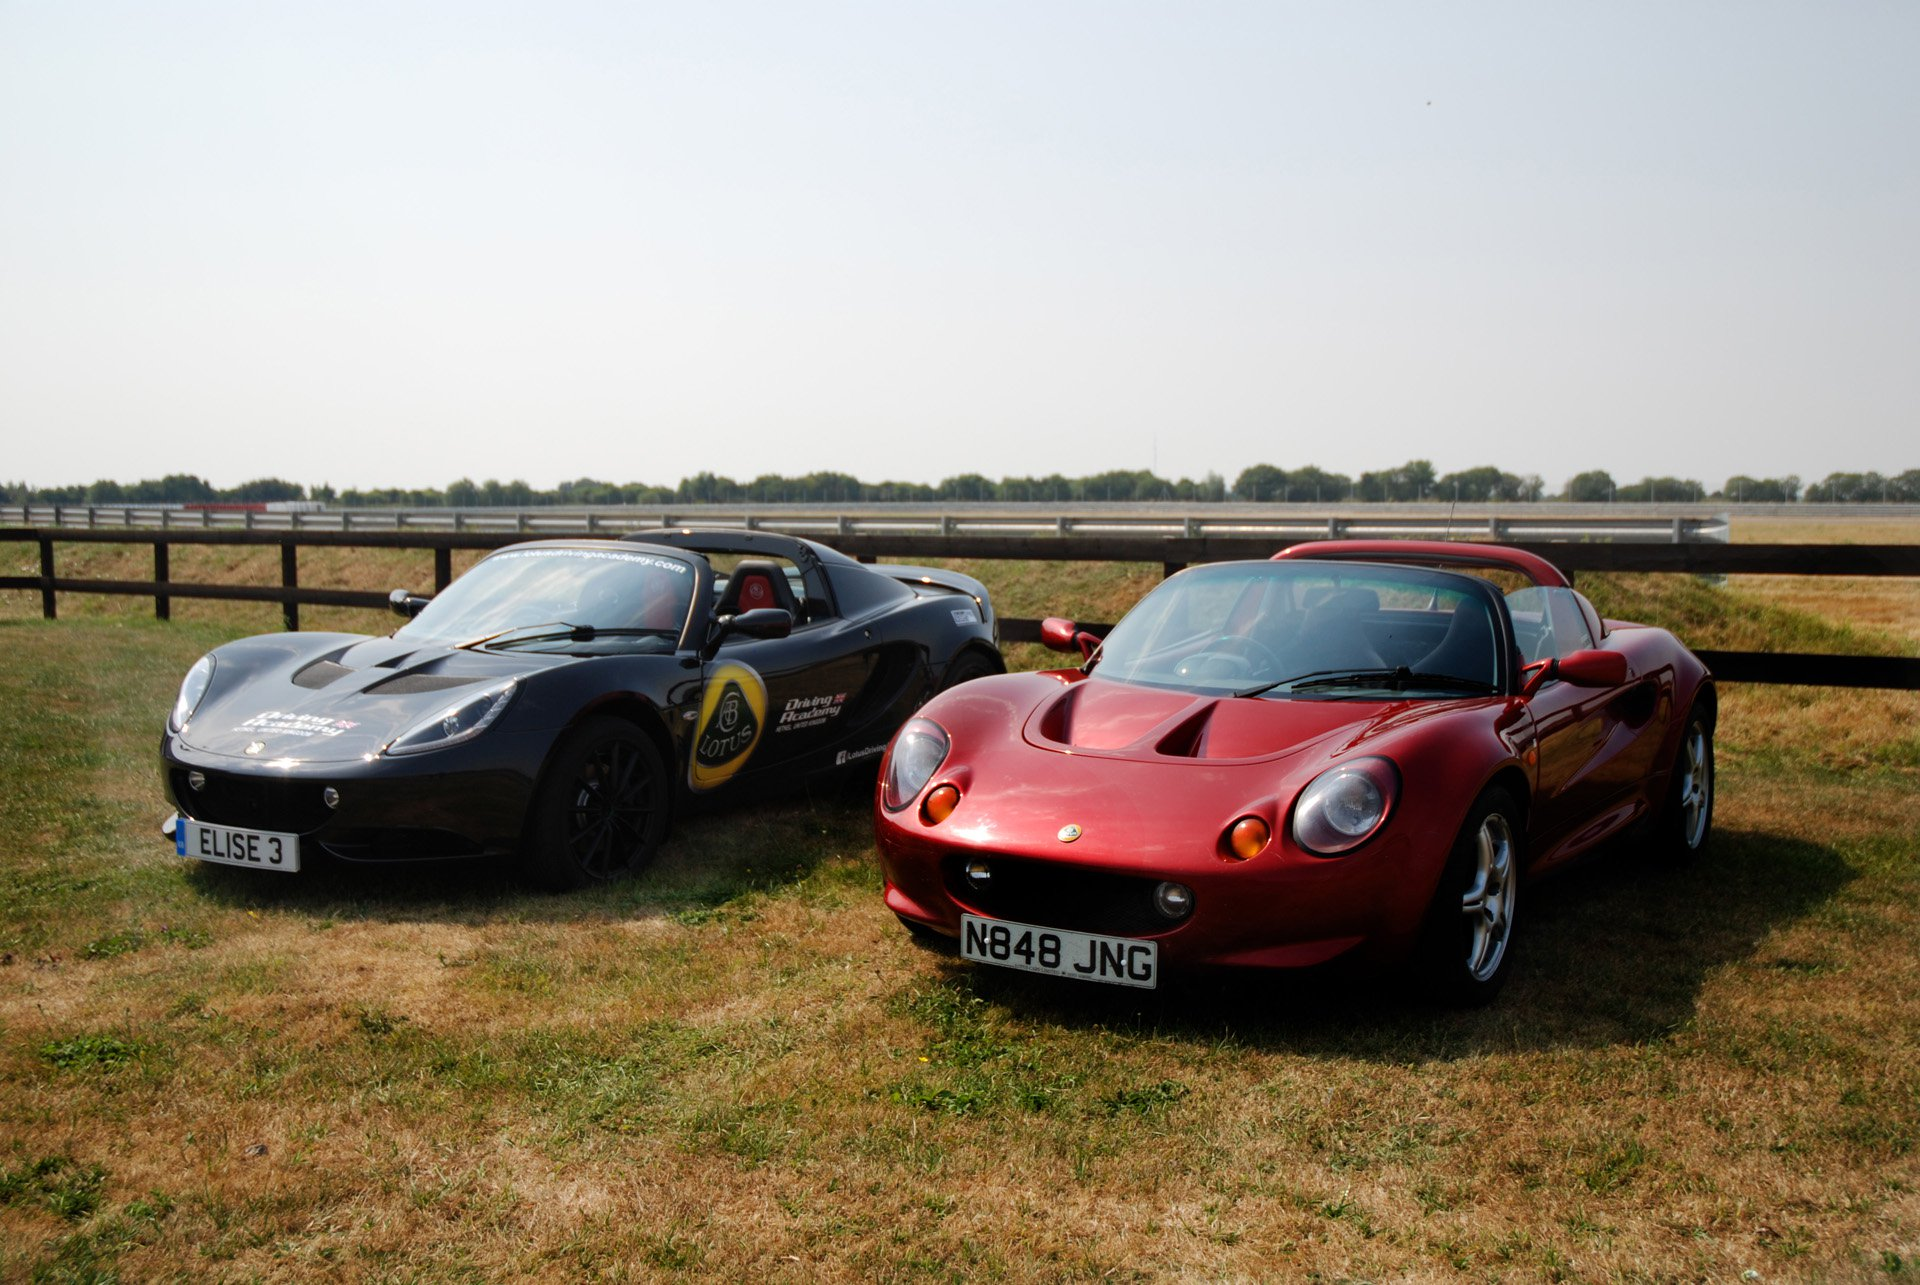 https://s1.cdn.autoevolution.com/images/news/gallery/lotus-reunites-the-elise-with-she-for-which-it-was-named_1.jpg